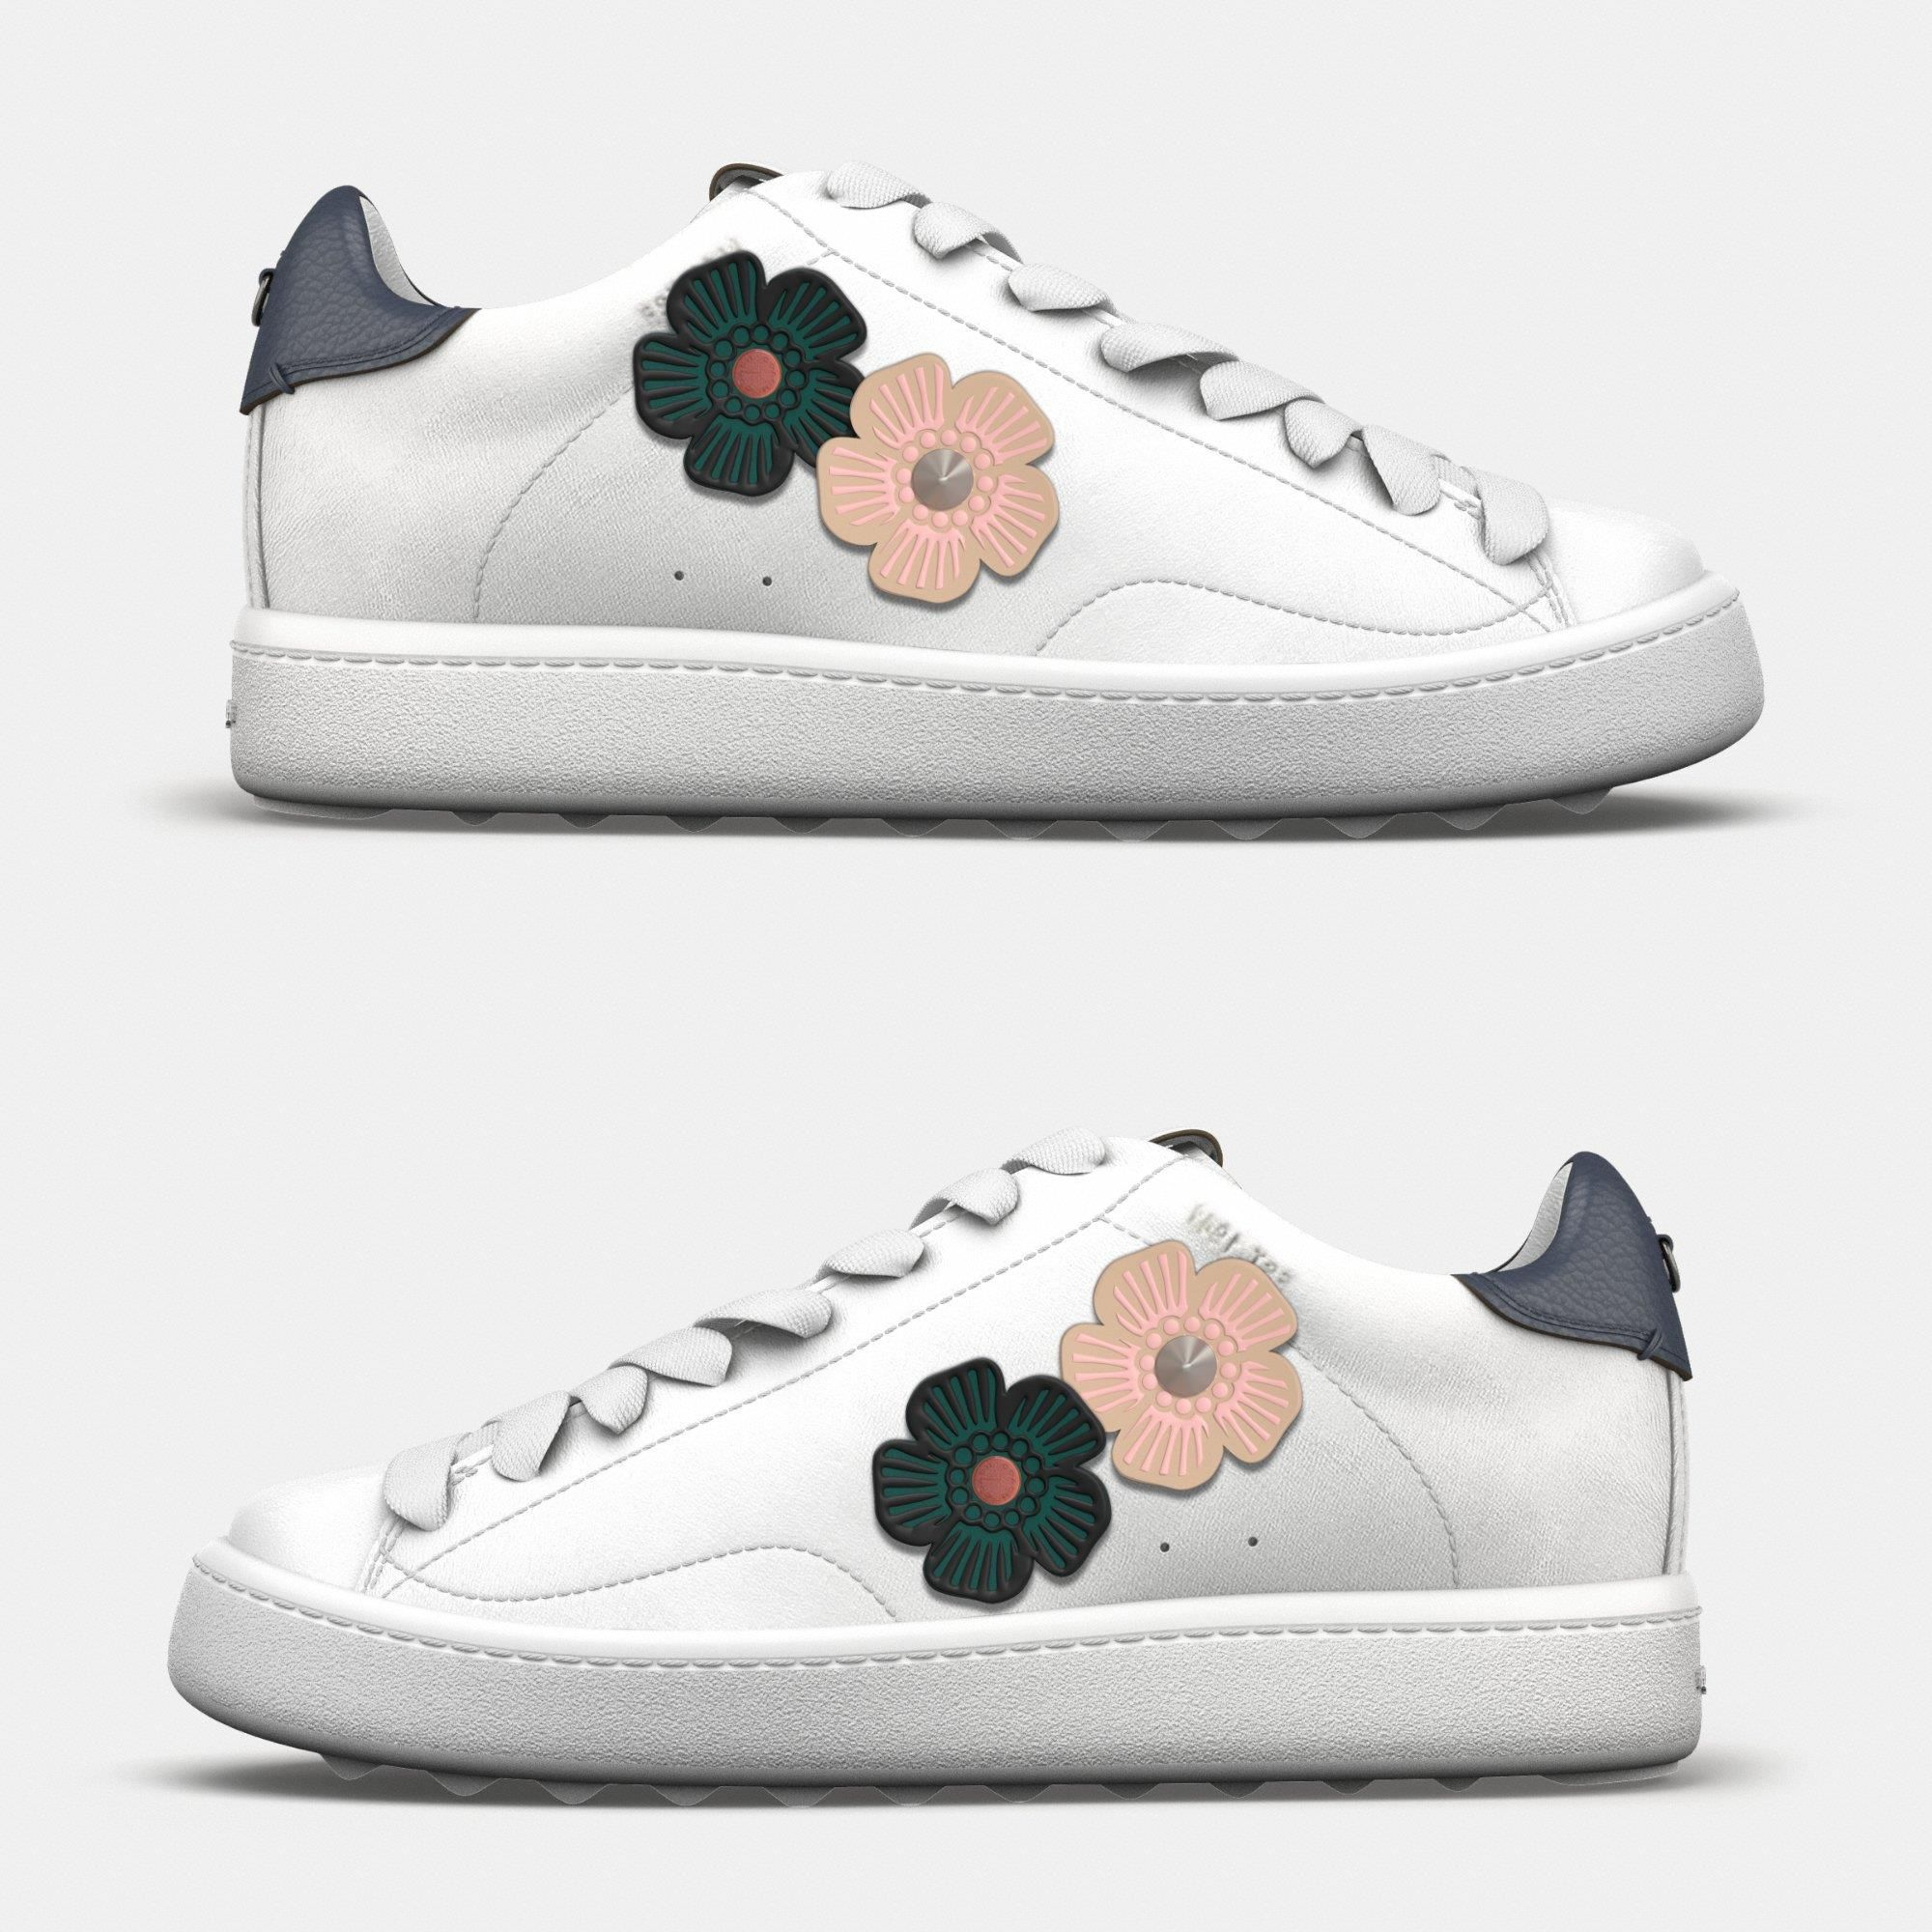 design sneakers from scratch